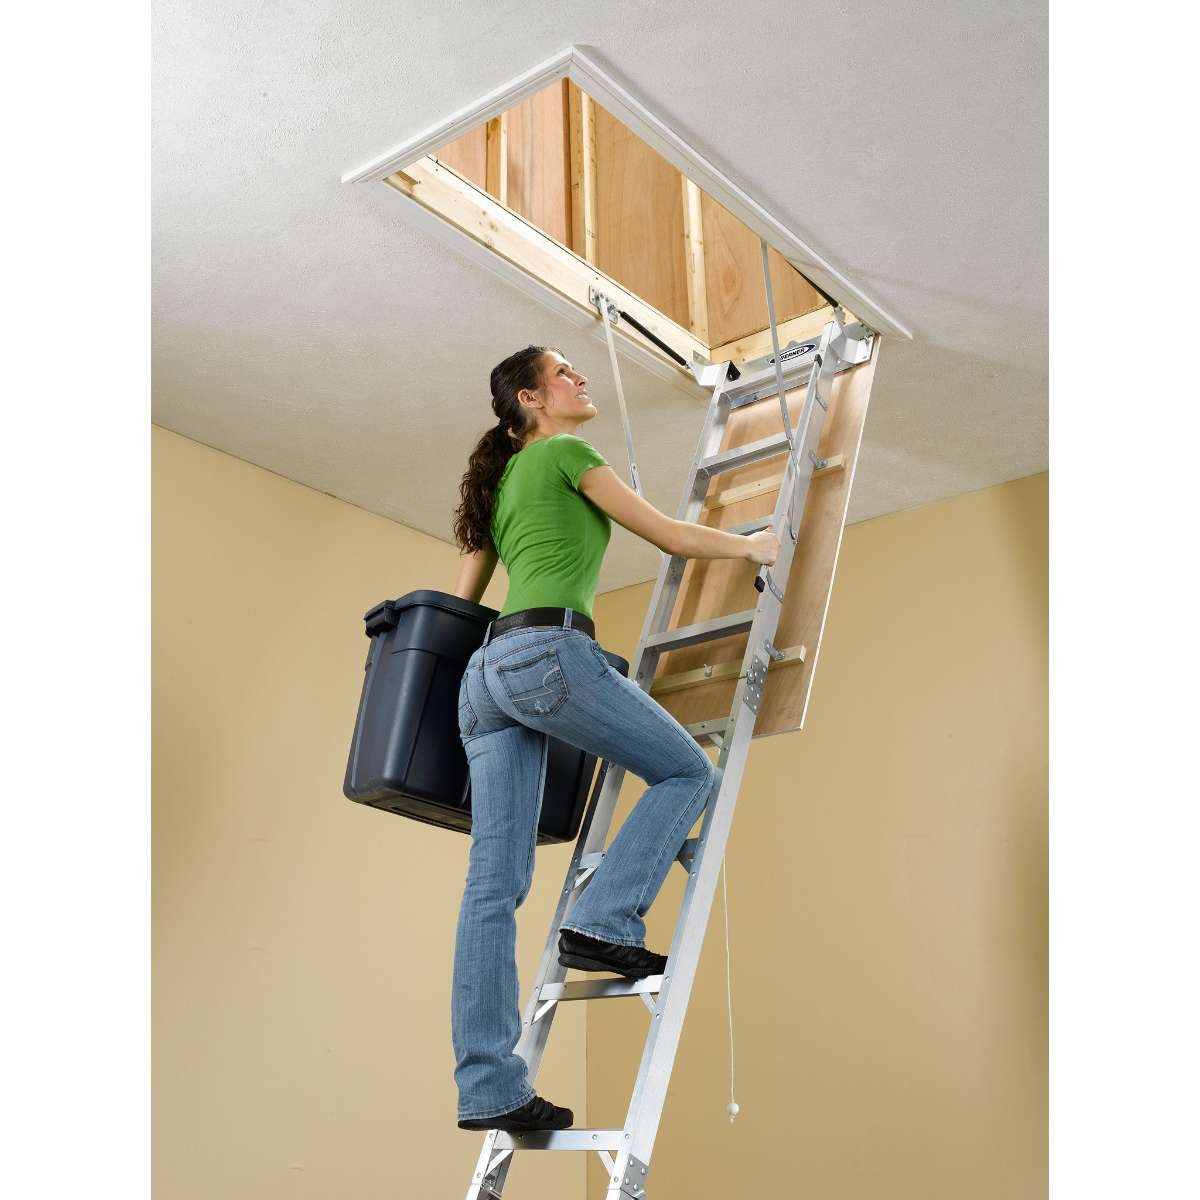 Werner Ah2512 Attic Aluminum Ladder Lightweight Ladders